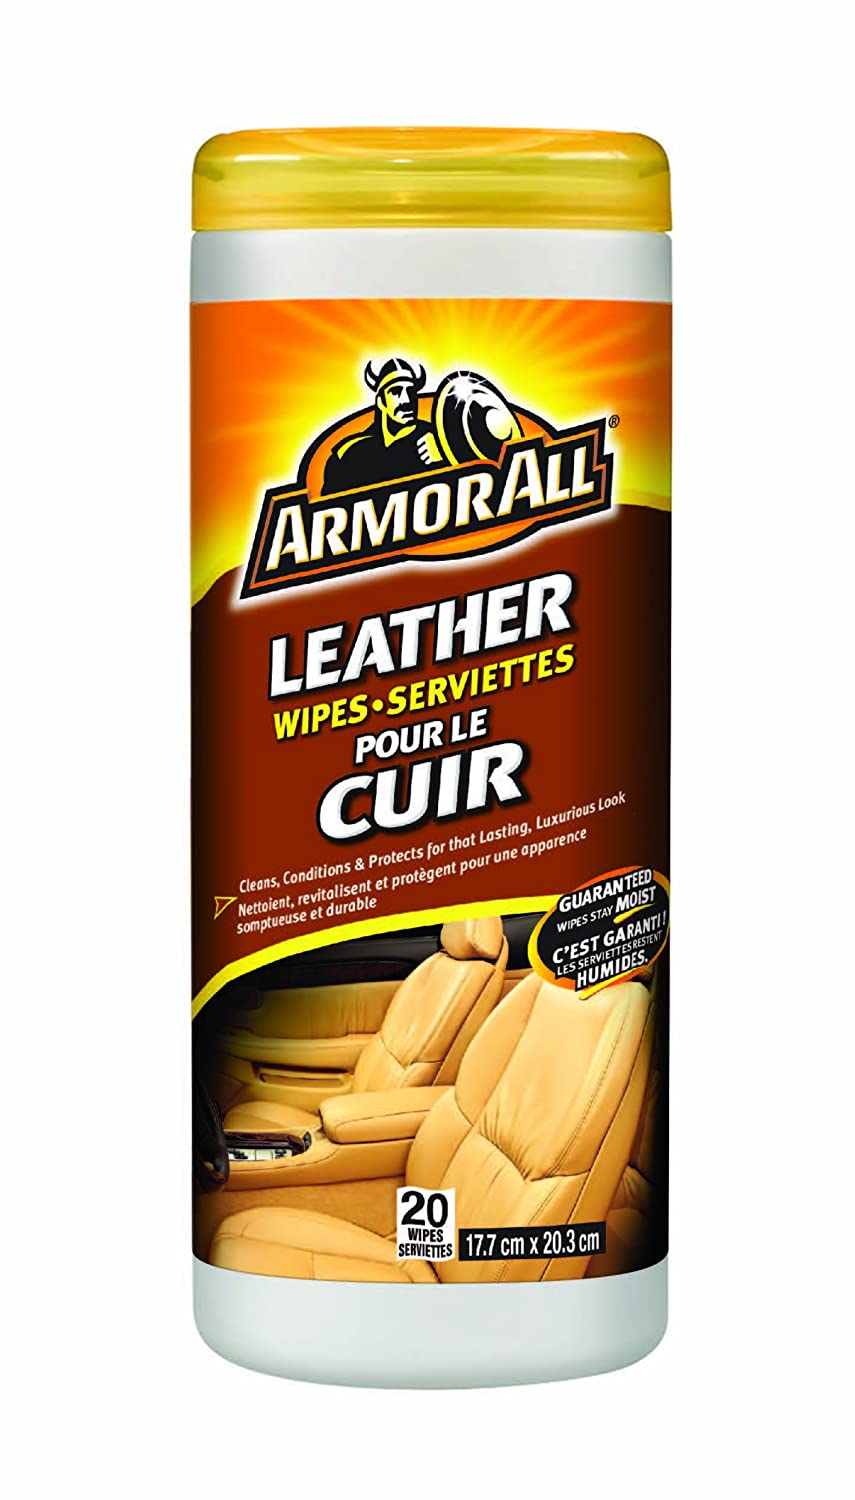 Armor All Leather Wipes, 20 Count Armored AutoGroup Canada 8472